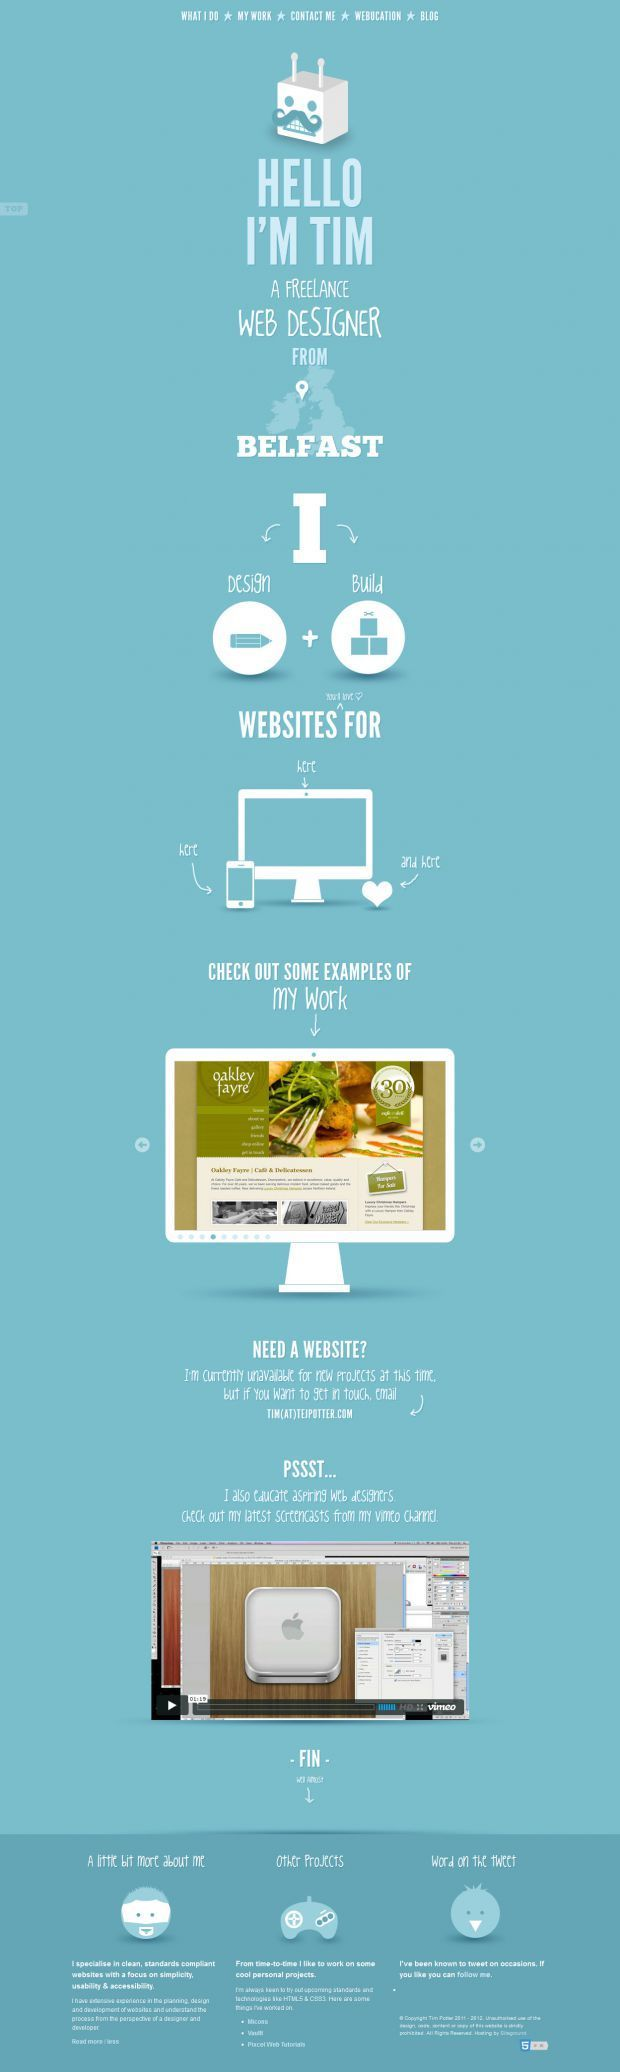 Webdesign Inspiration -- Portfolio of Tim Potter - Belfast Freelance Web Designer - Best website, web design inspiration showcase